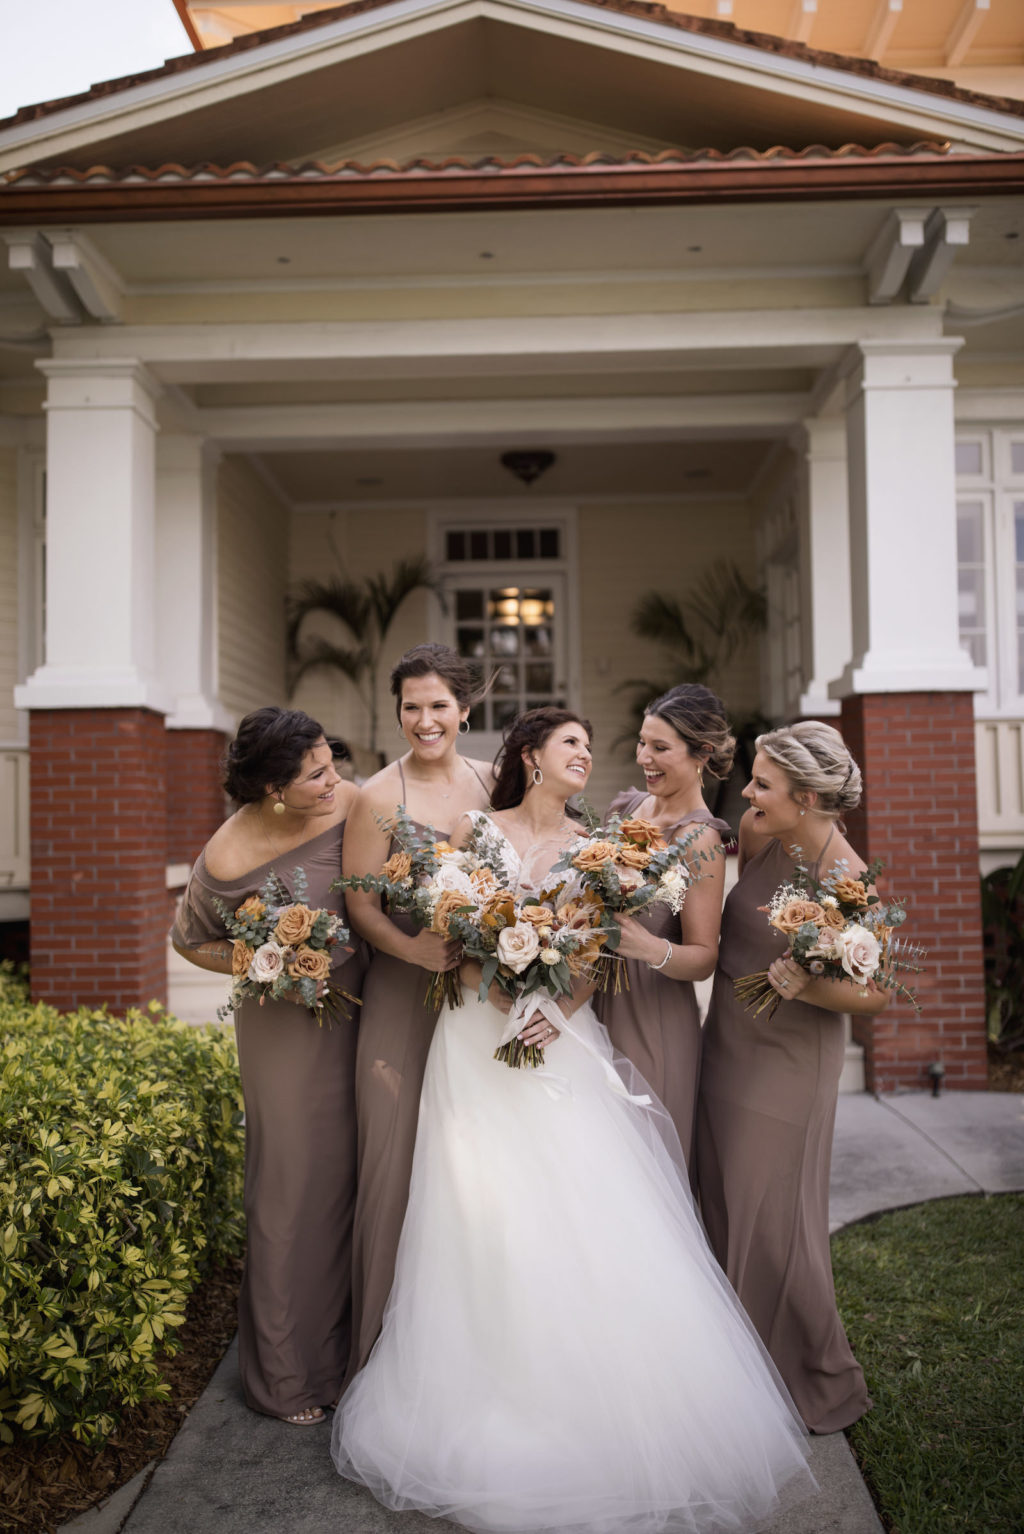 Bridesmaids in Neutral Taupe Mix and Match Bridesmaid Dresses Next to the Bride Portrait   Bohemian Inspired Floral Bouquets with Burnt Orange, Cream and Greenery   Paloma Blanca, Overskirt: Hayley Paige   Bridesmaids in Show Me Your MuMu